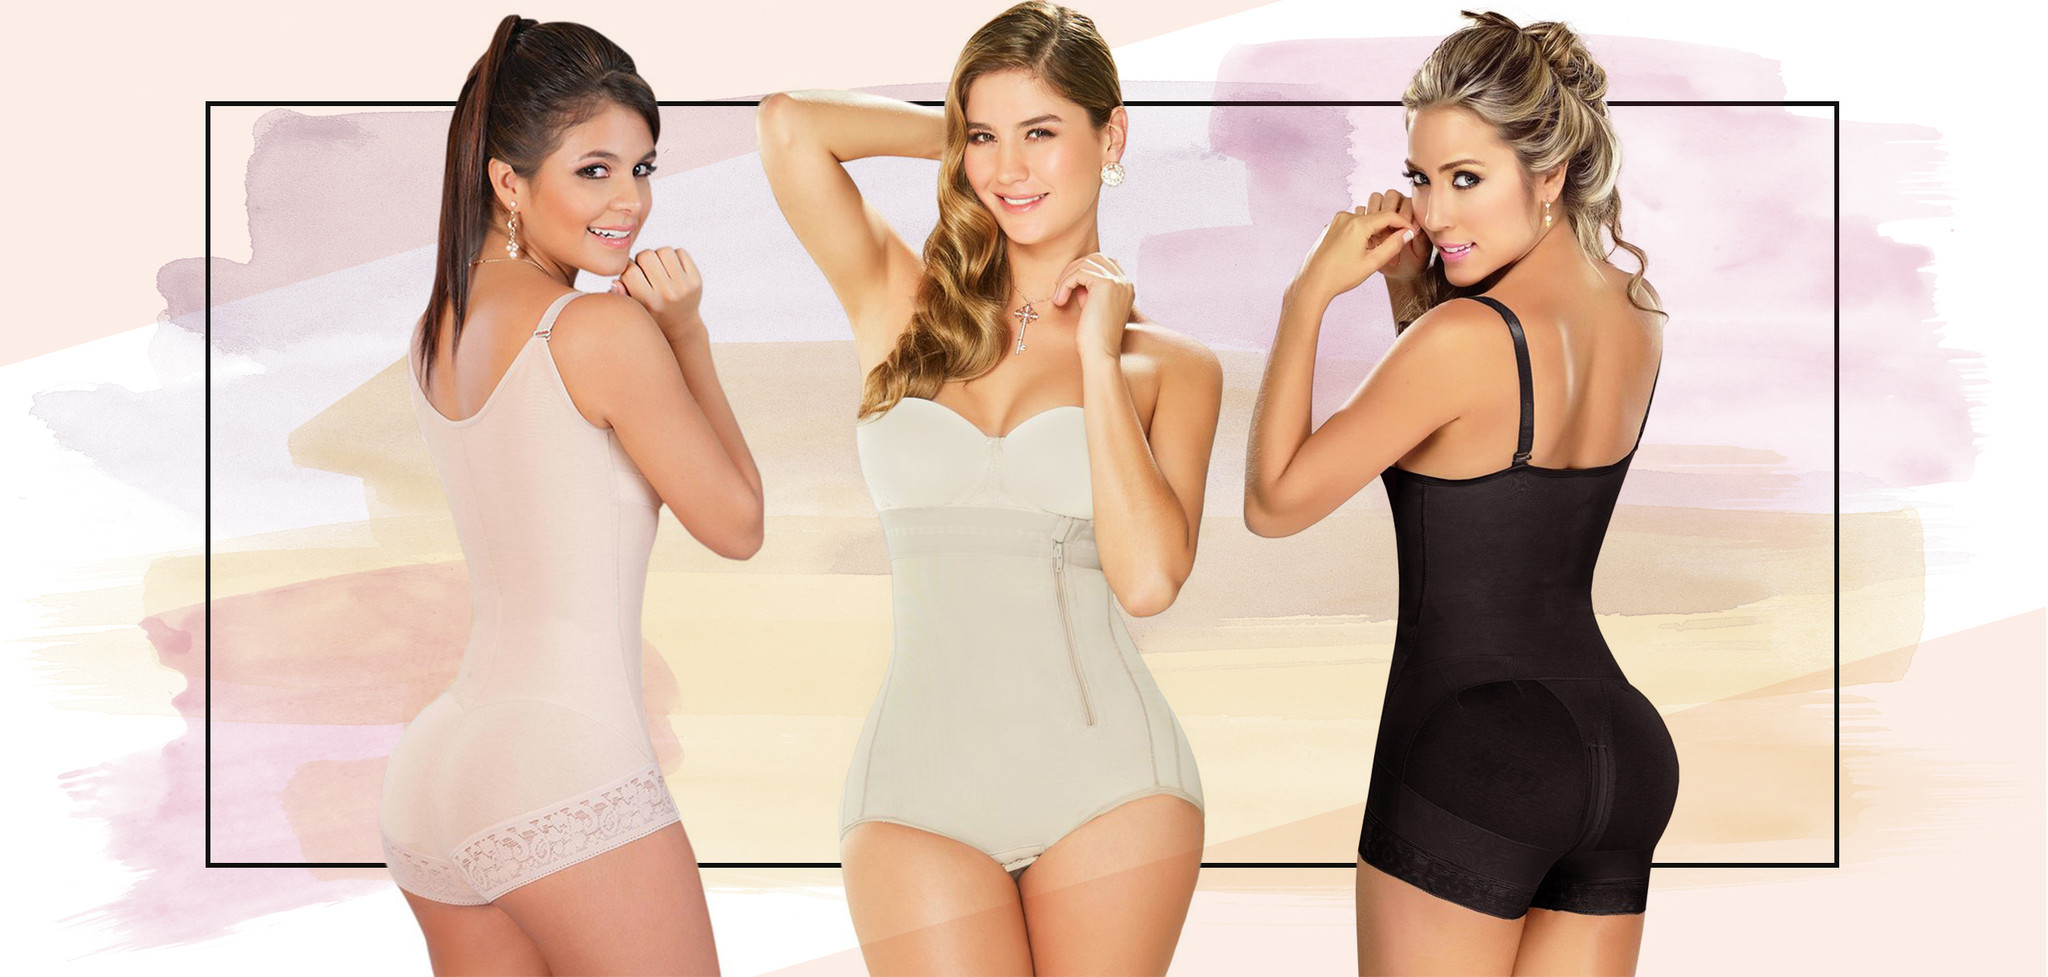 d9c6adcfe Most women own one of this or are planning to buy a body shaper sooner or  later. For those planning to buy